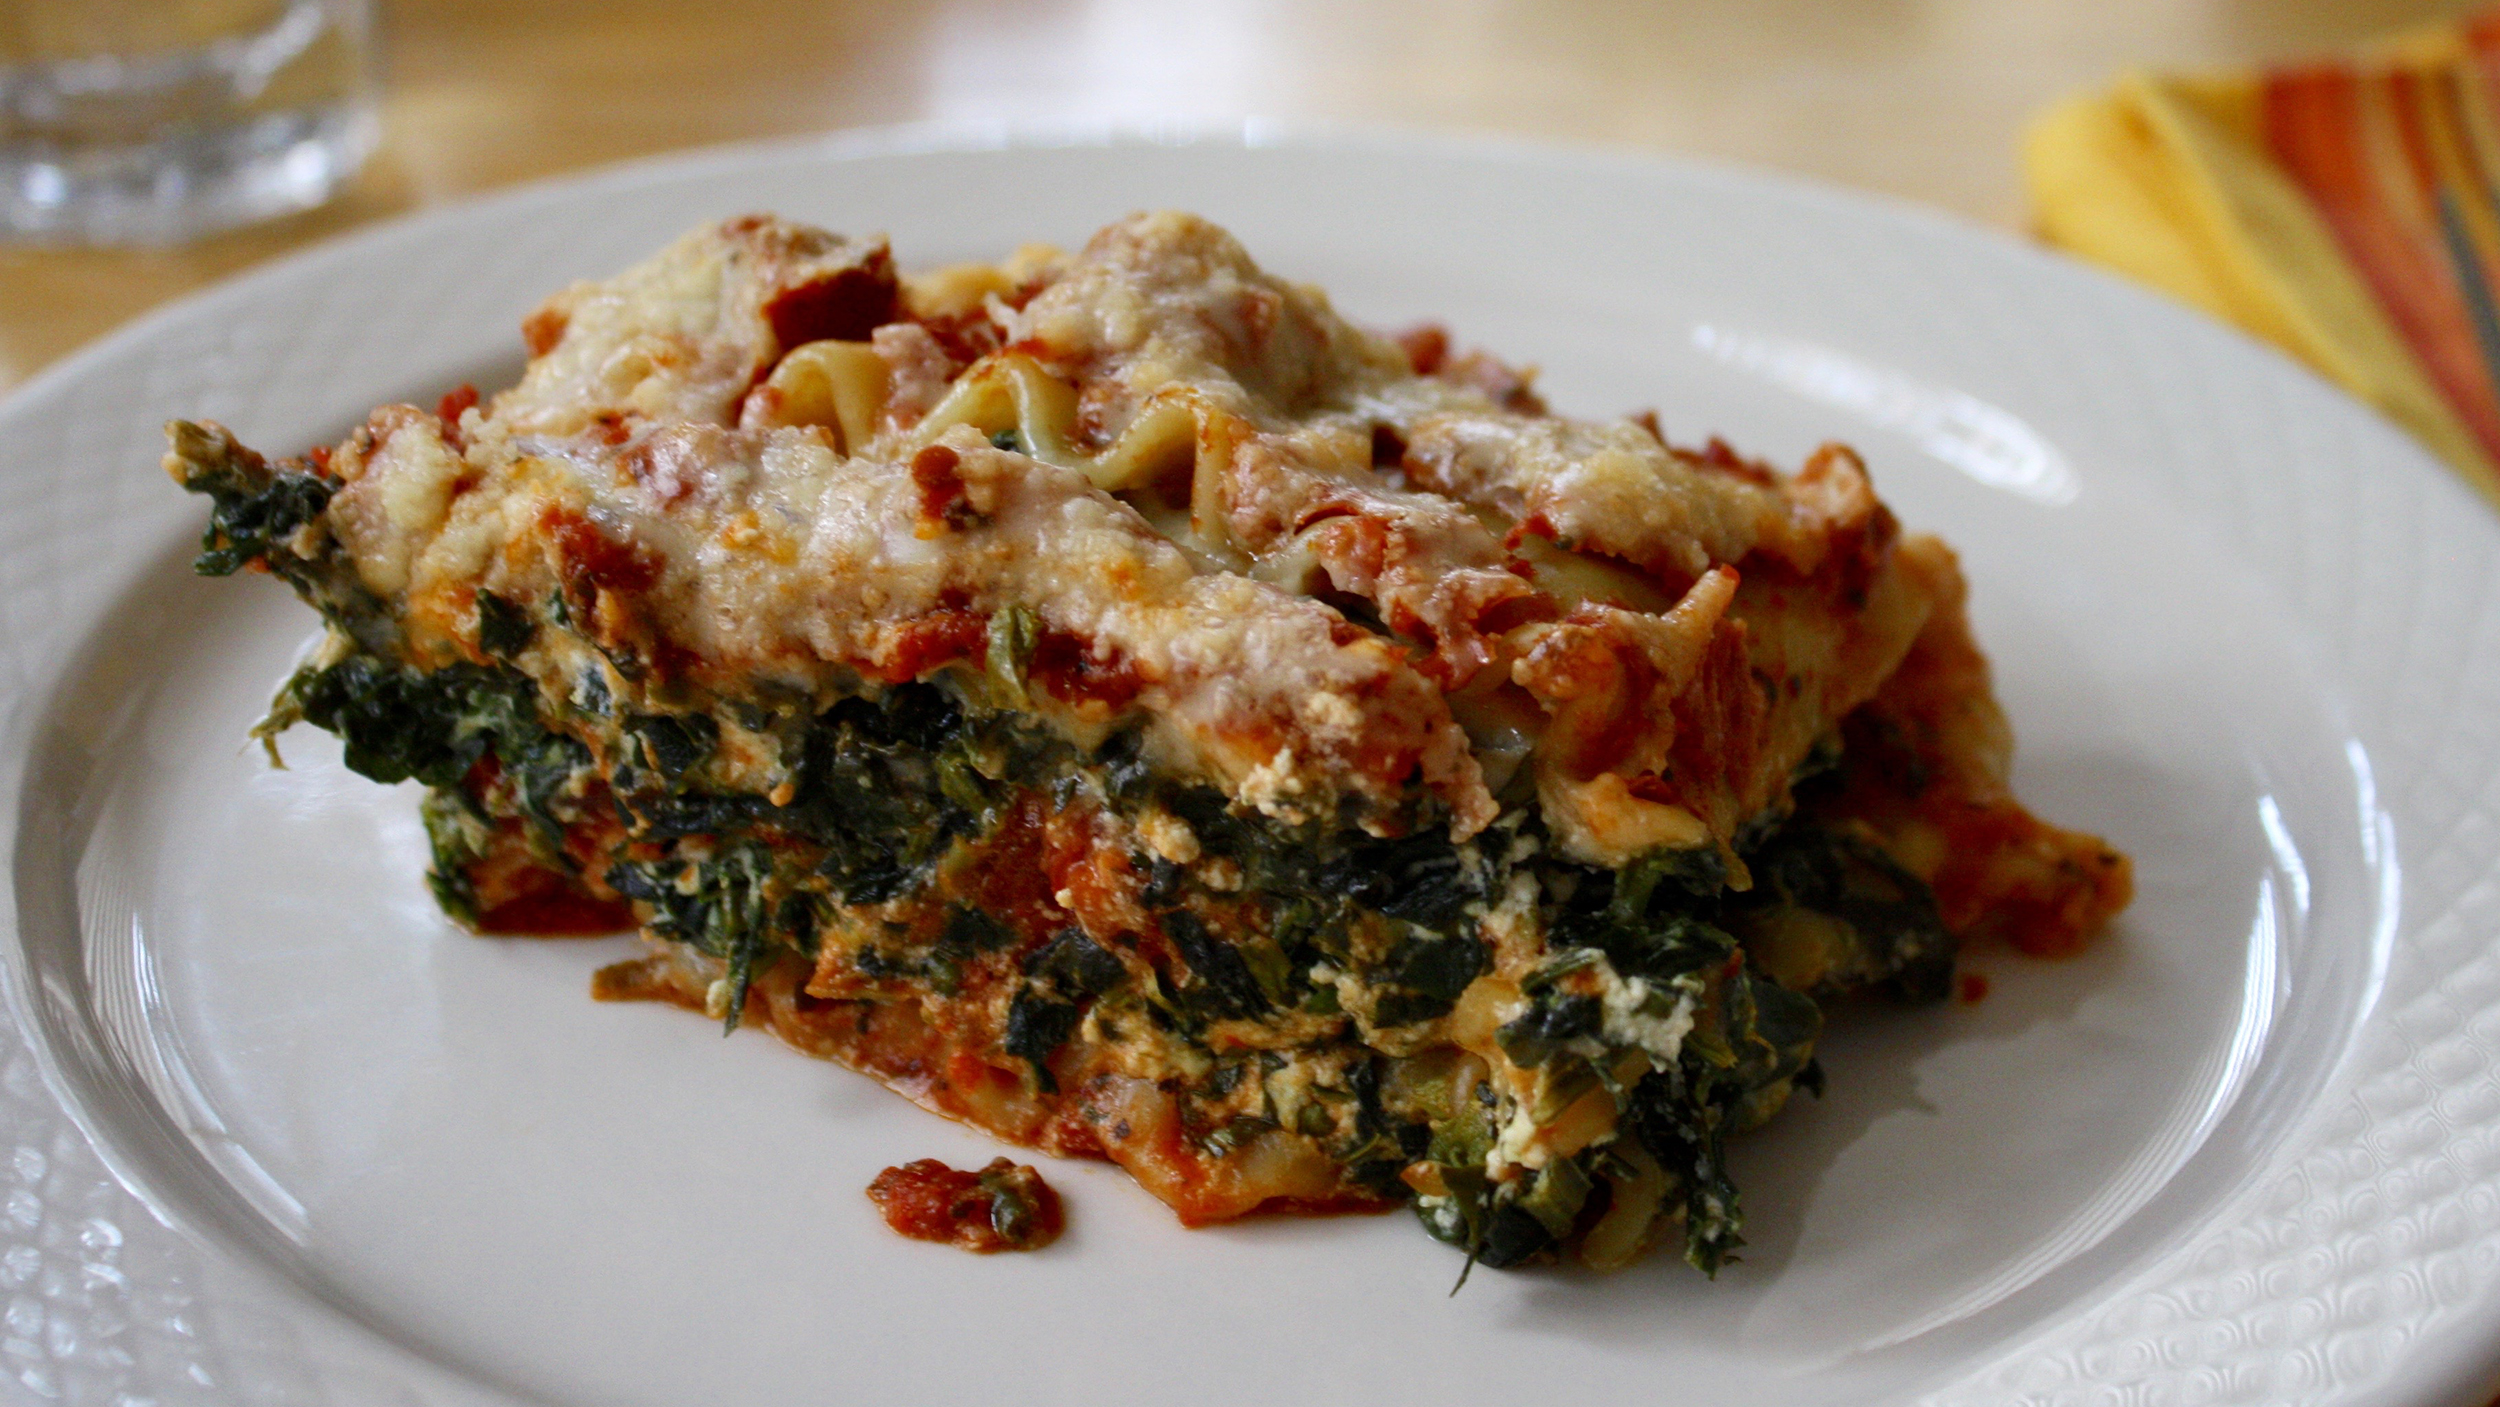 7 ingredient slow cooker spinach lasagna your new no stress dinner 7 ingredient slow cooker spinach lasagna your new no stress dinner recipe today forumfinder Choice Image